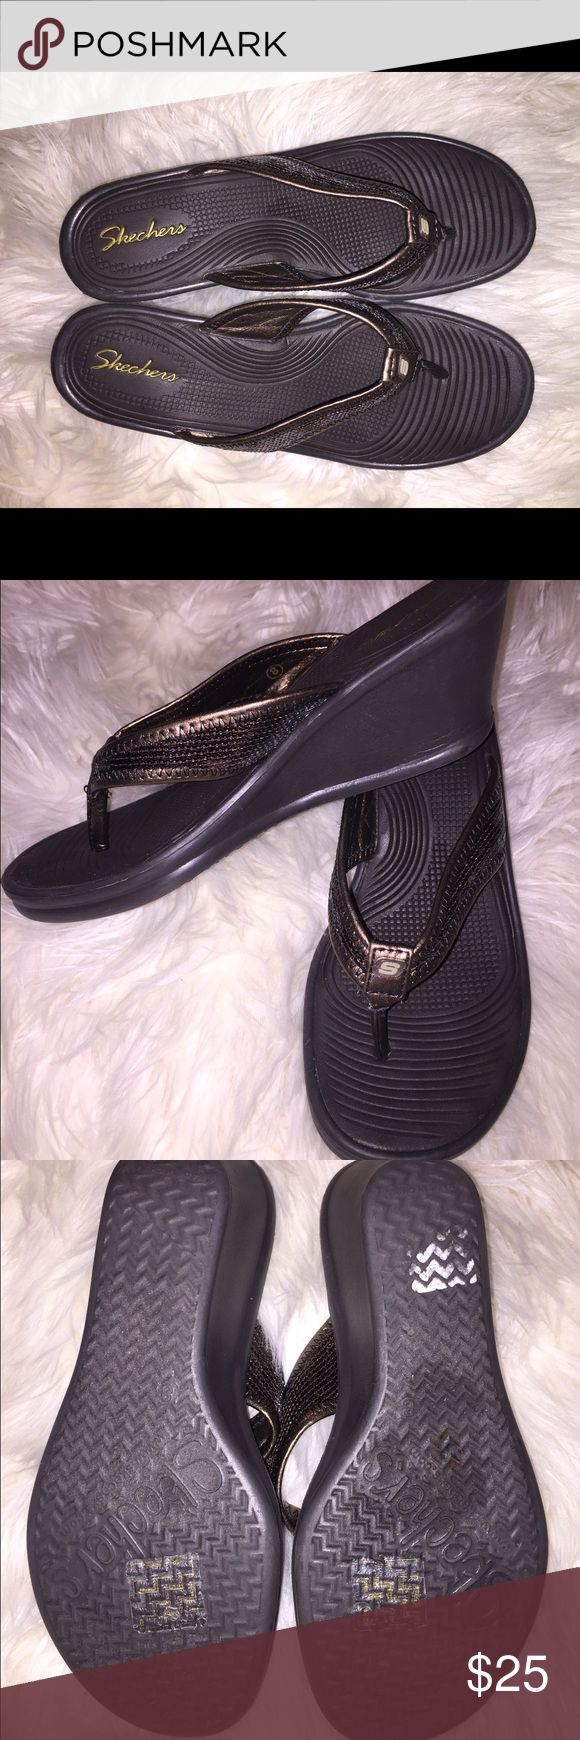 SZ 8 SKECHERS WEDGE HEEL BROWN FLIP FLOPS- sparkly These are very nice and worn only a few times as the tags are still on bottoms. They are super soft and comfy and will fit a SZ 7.5 - 8. Skechers Shoes Wedges